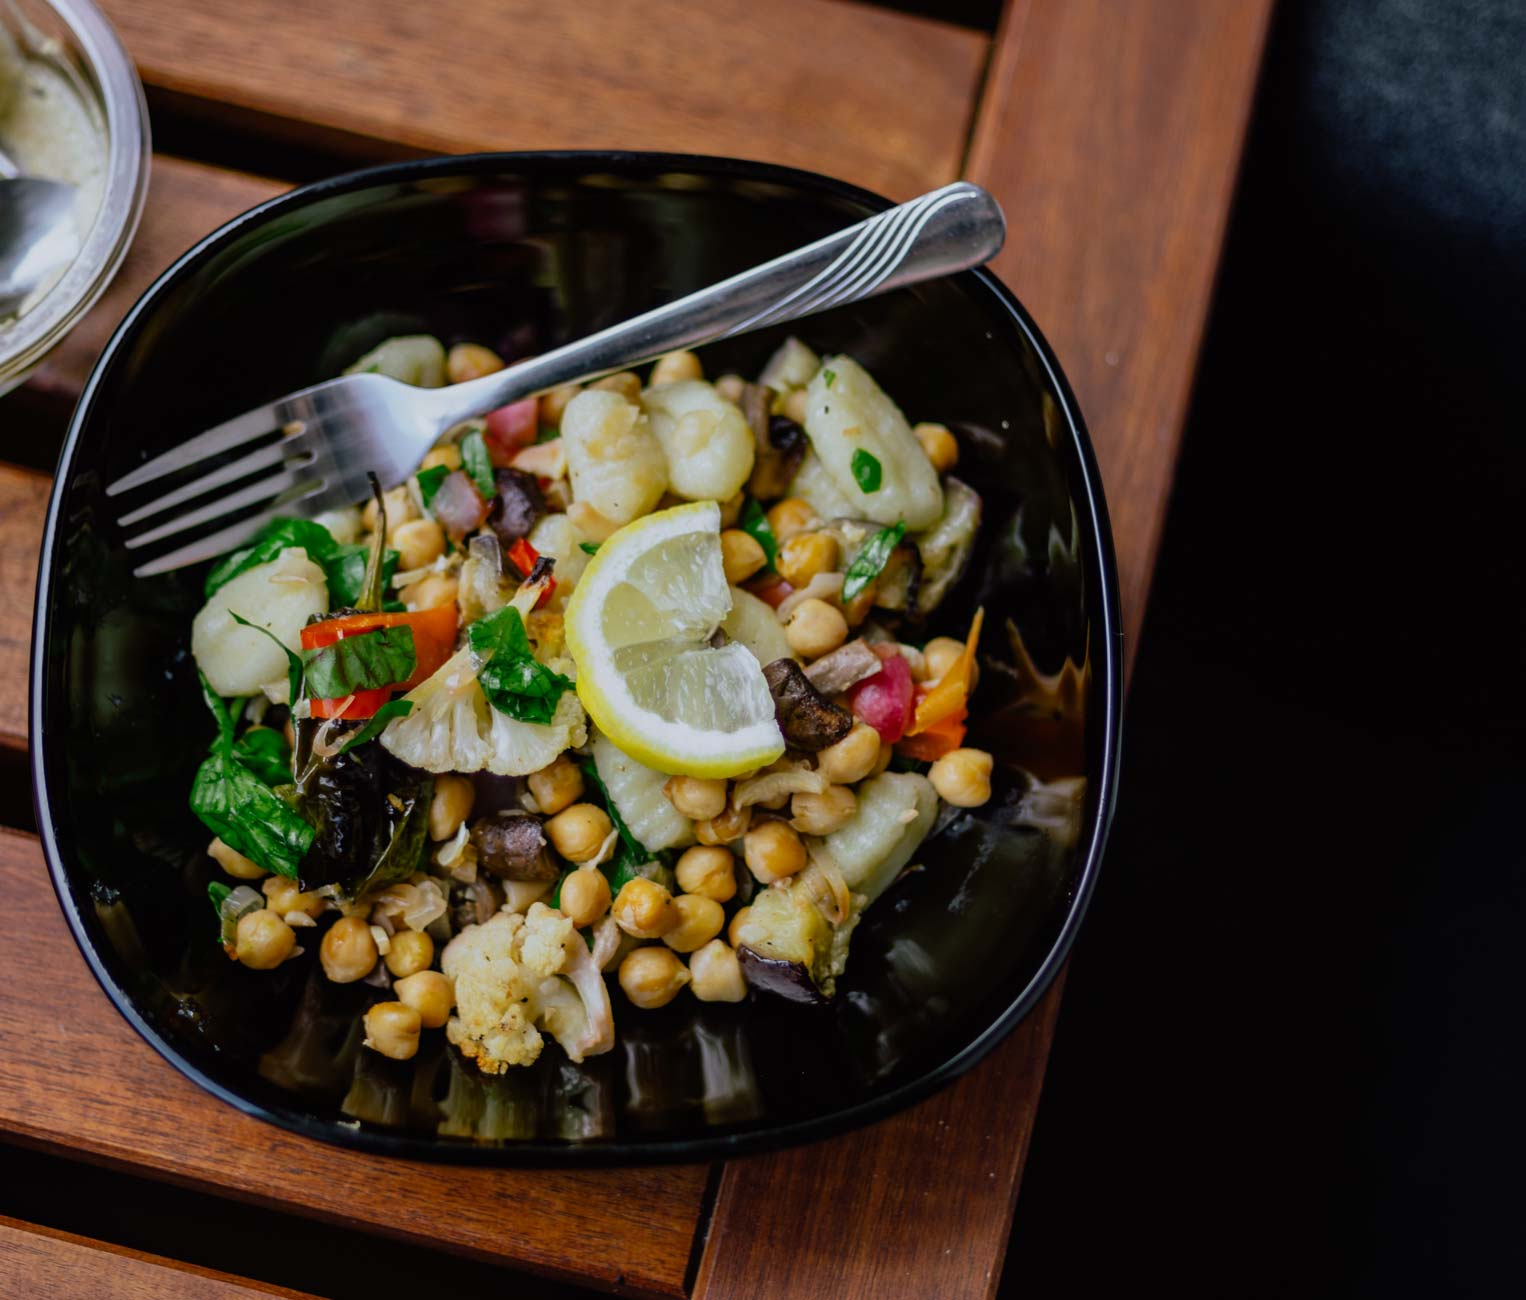 Salad-chickpea-vegan-vege-recipe